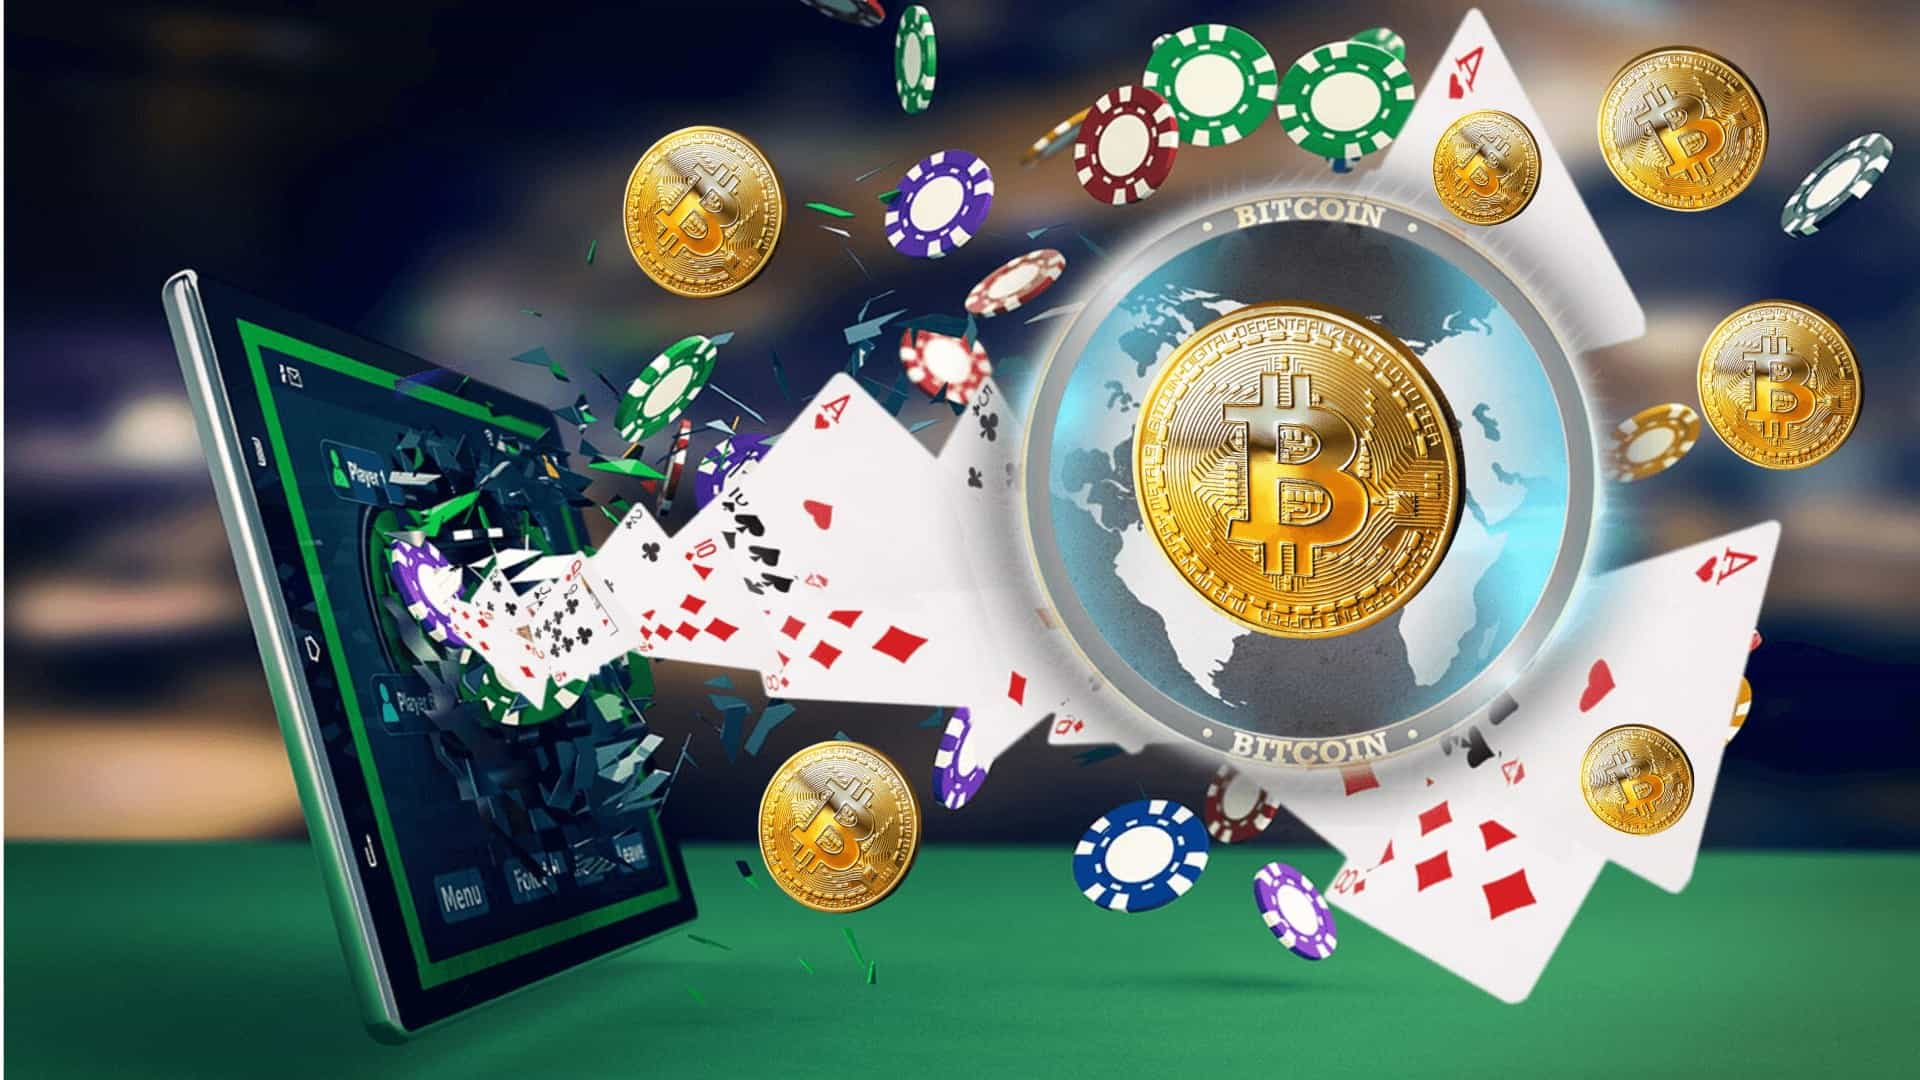 Bovada Poker Features Quality Gaming Software